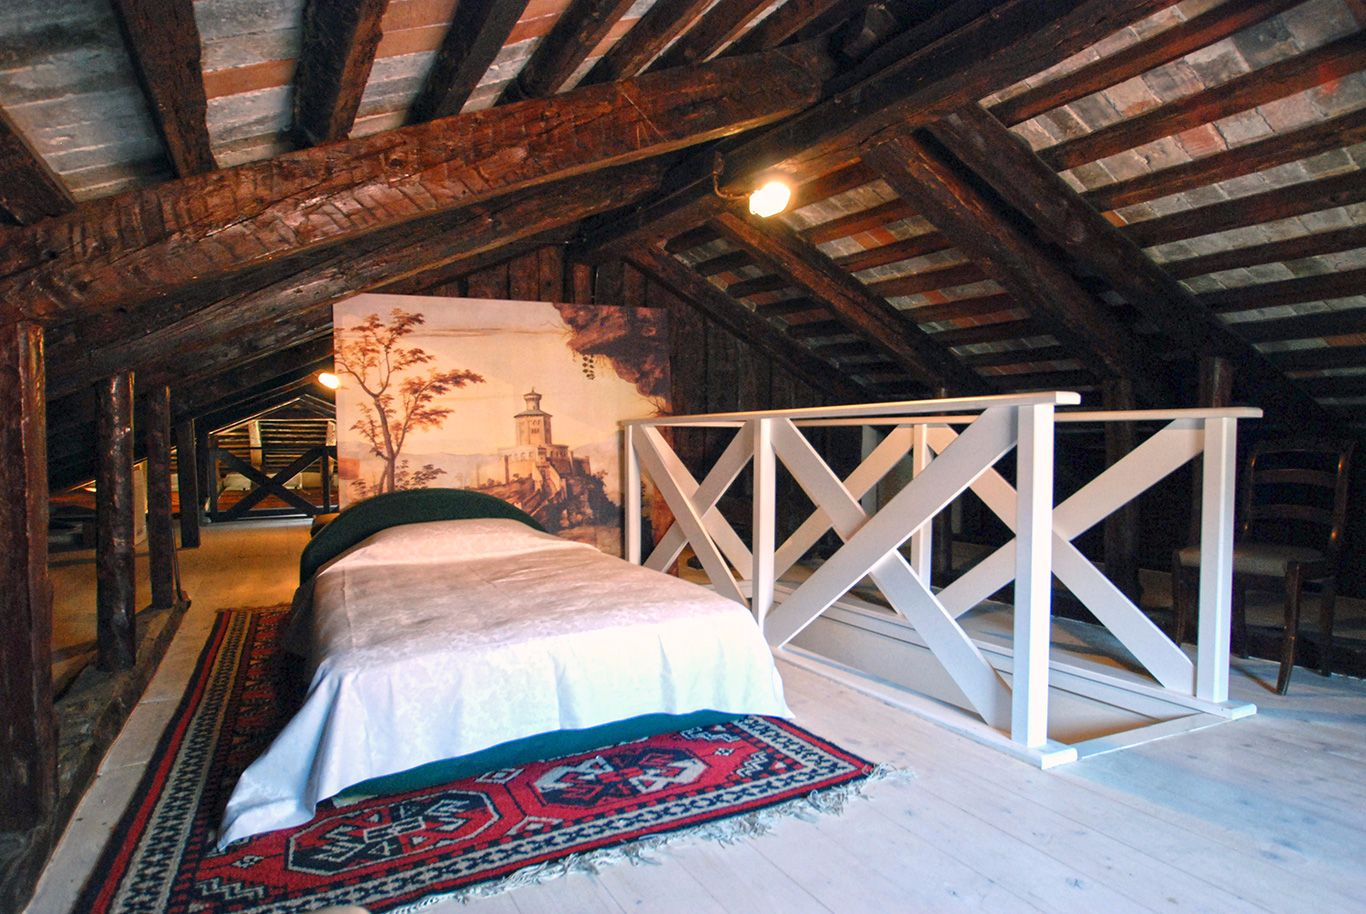 attic room with single bed